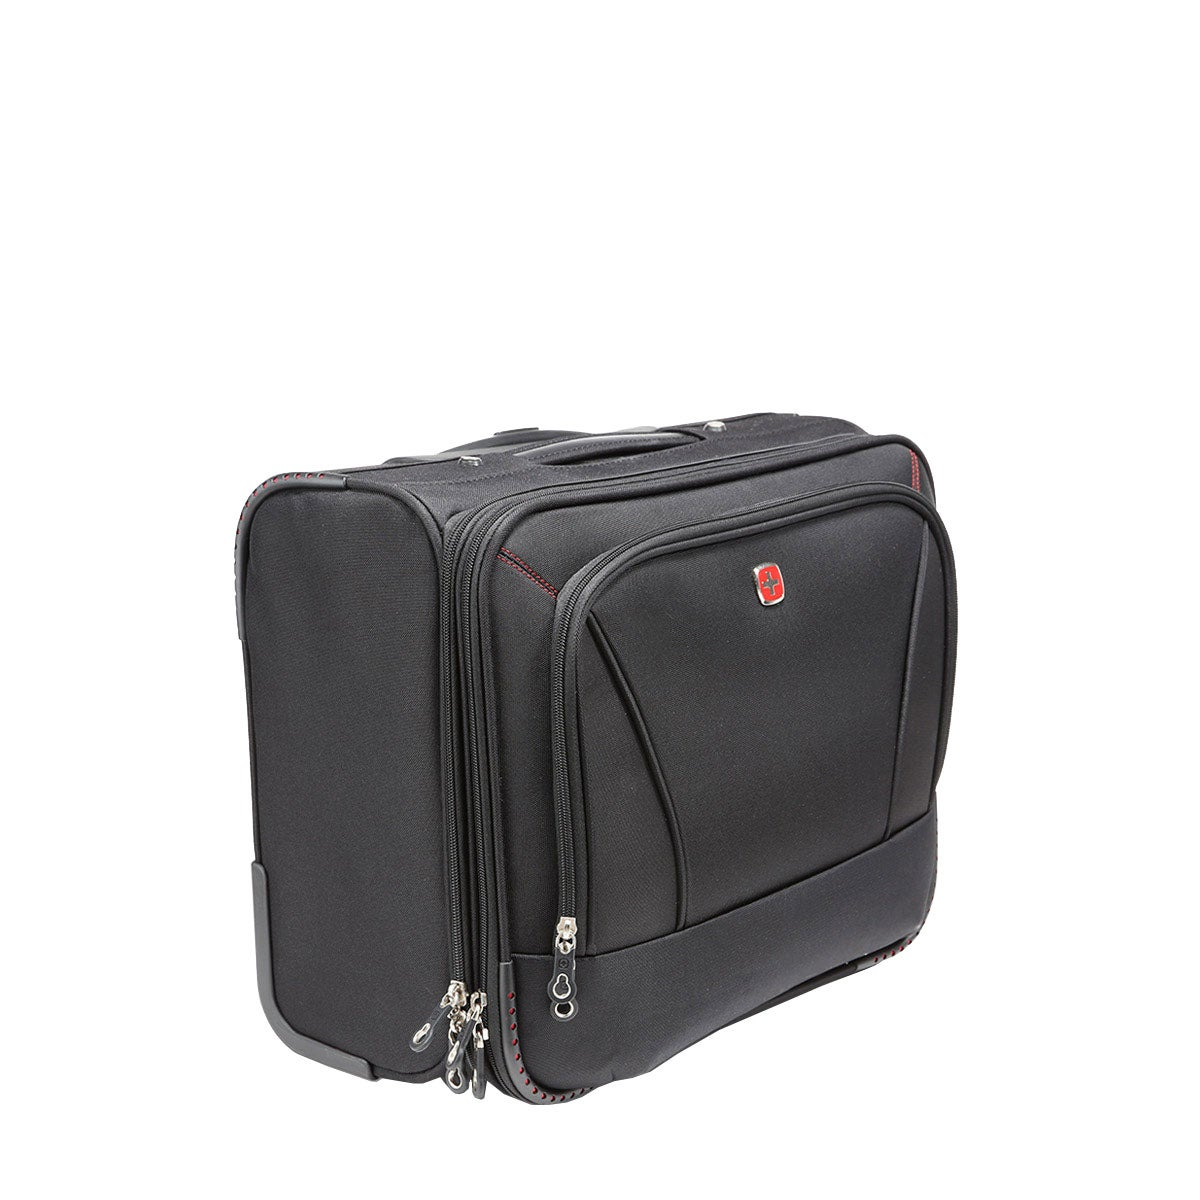 Mns Swiss Gear Business Traveler Roller